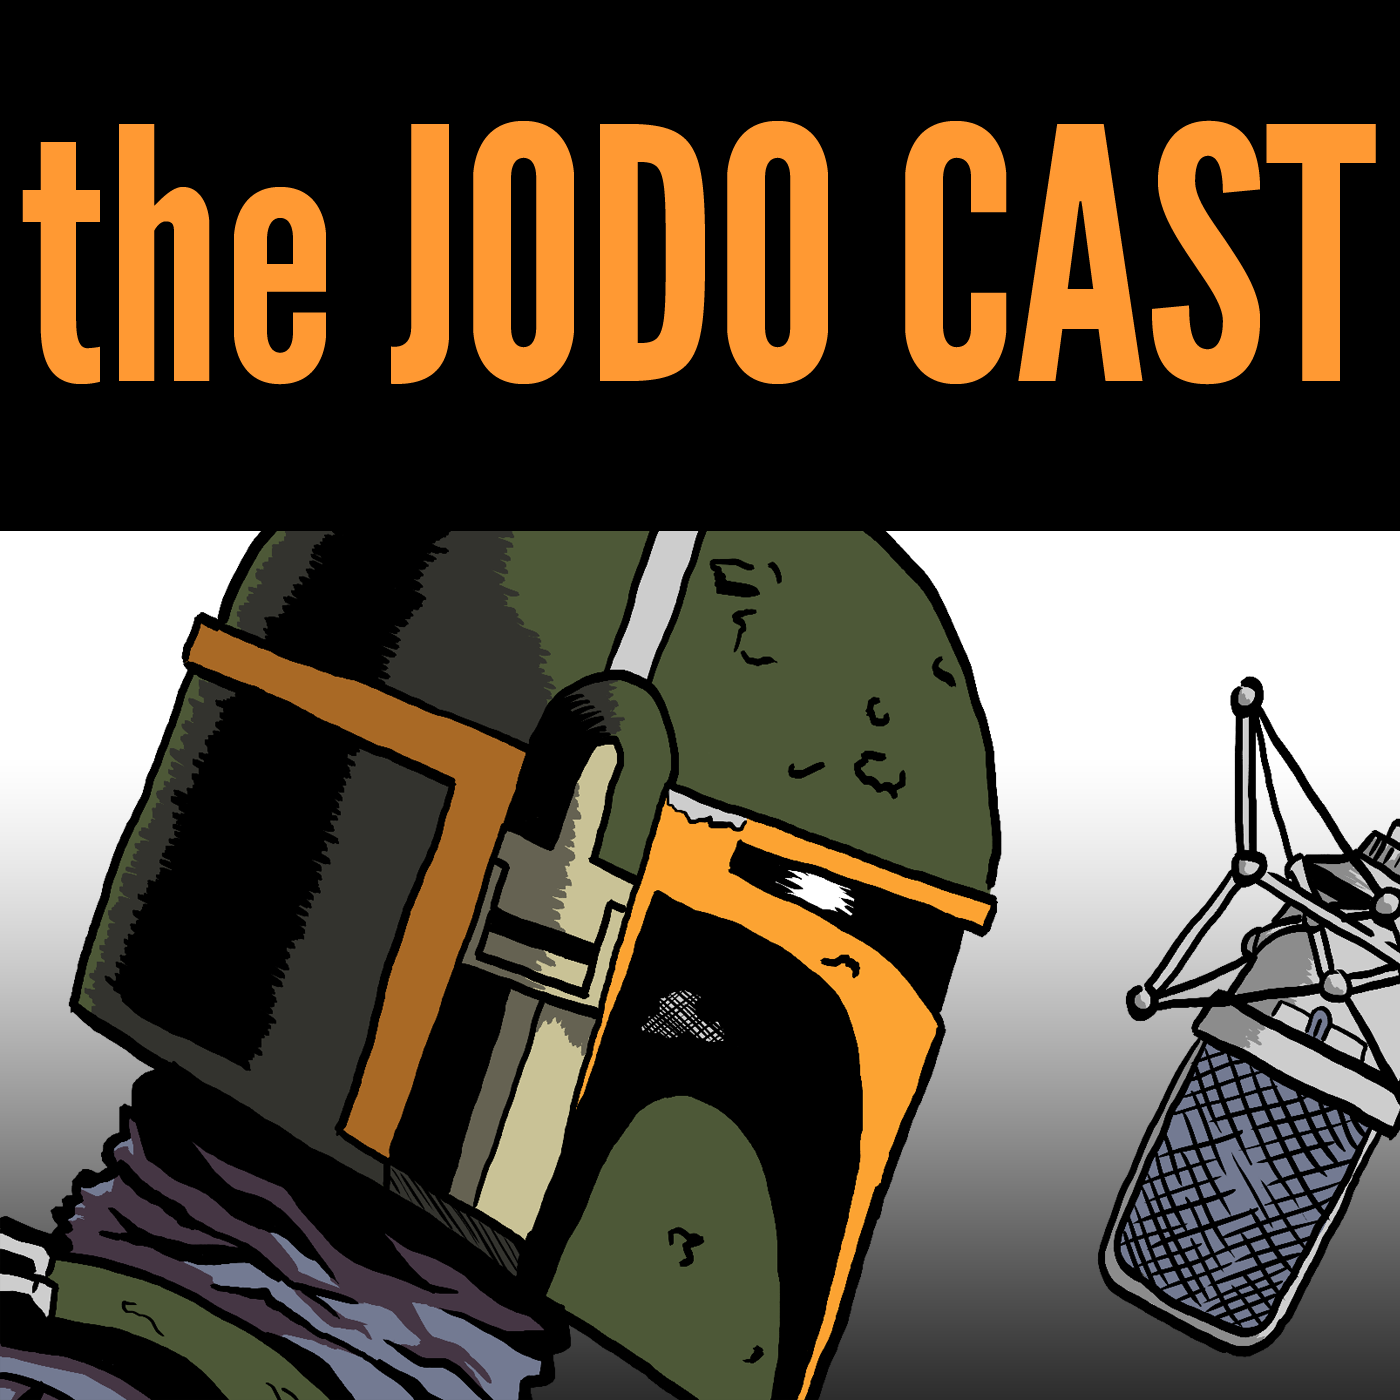 The Jodo Cast